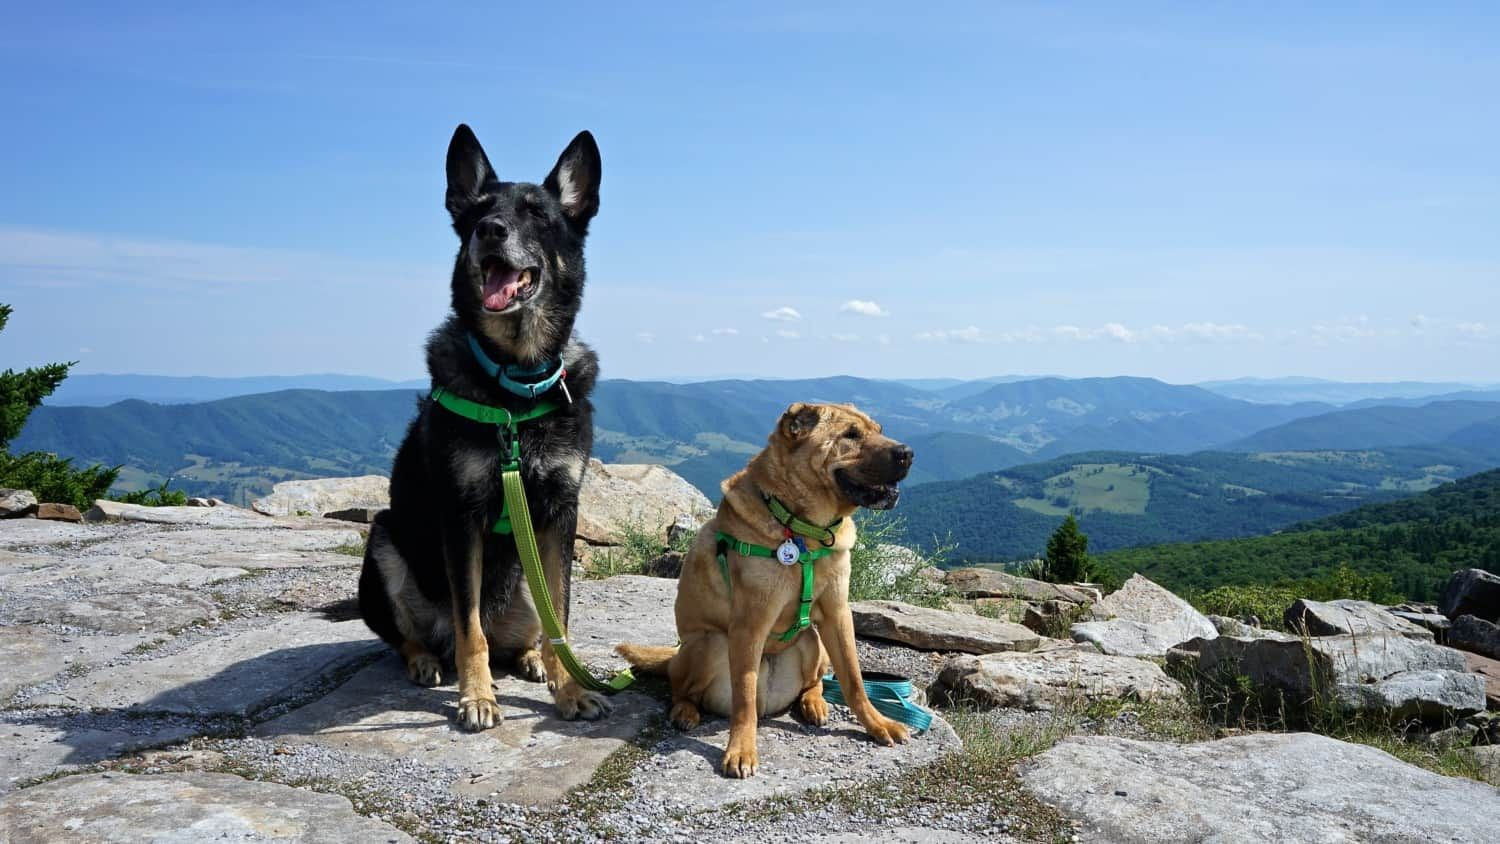 West Virginia's Top Pet Friendly Attraction: The Monongahela National Forest